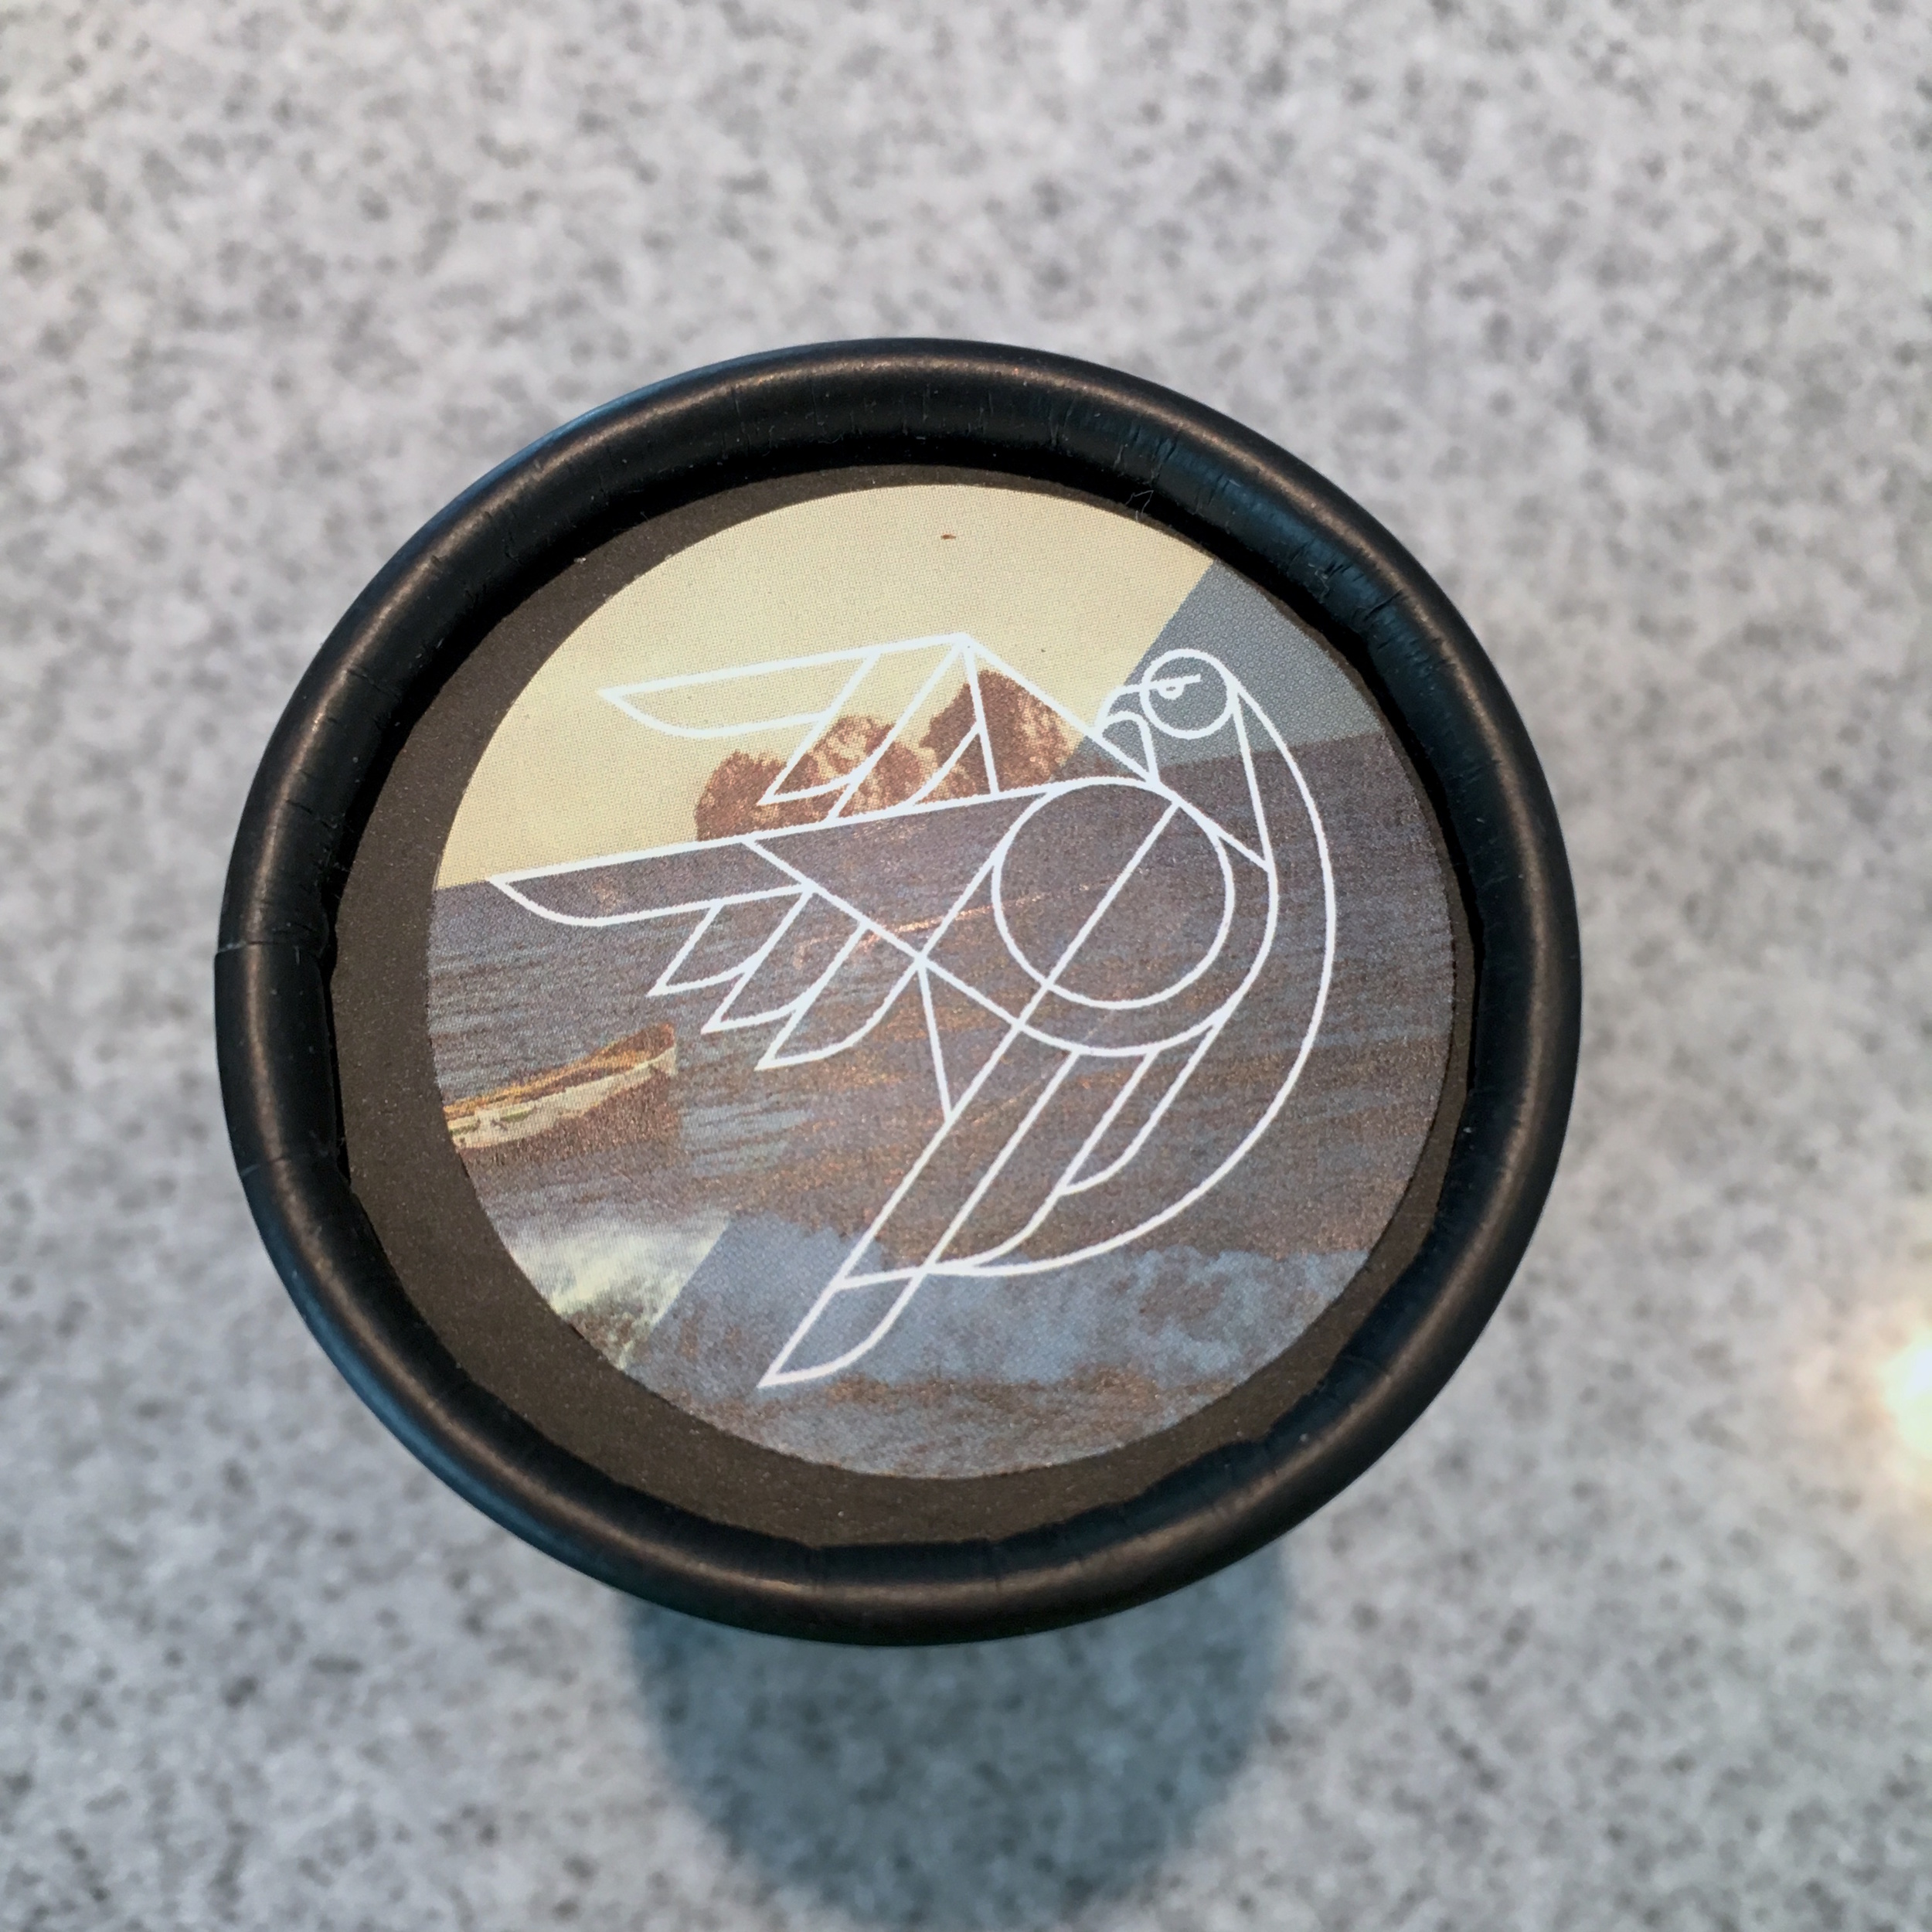 Takeflight Logo and Top Packaging